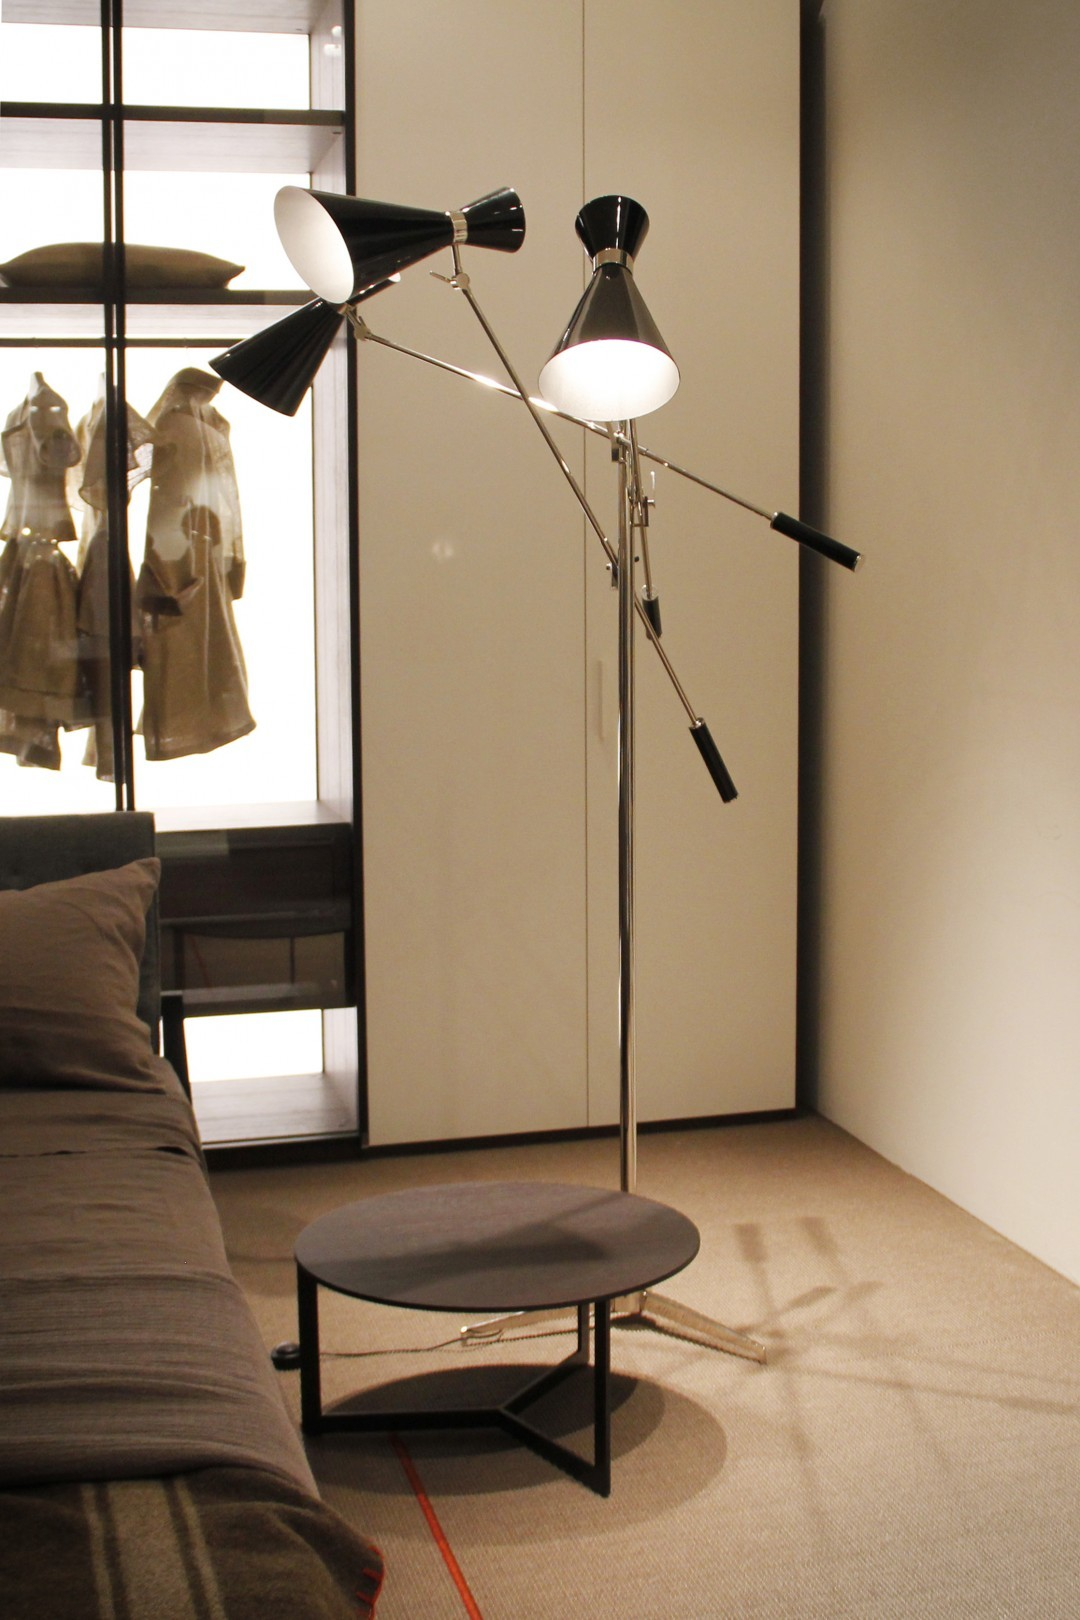 modern loft modern loft Decorate Your Modern Loft With These Floor Lamps! stanley floor ambience 01 HR1d470b3b9916cc024c67422c8974bbb4